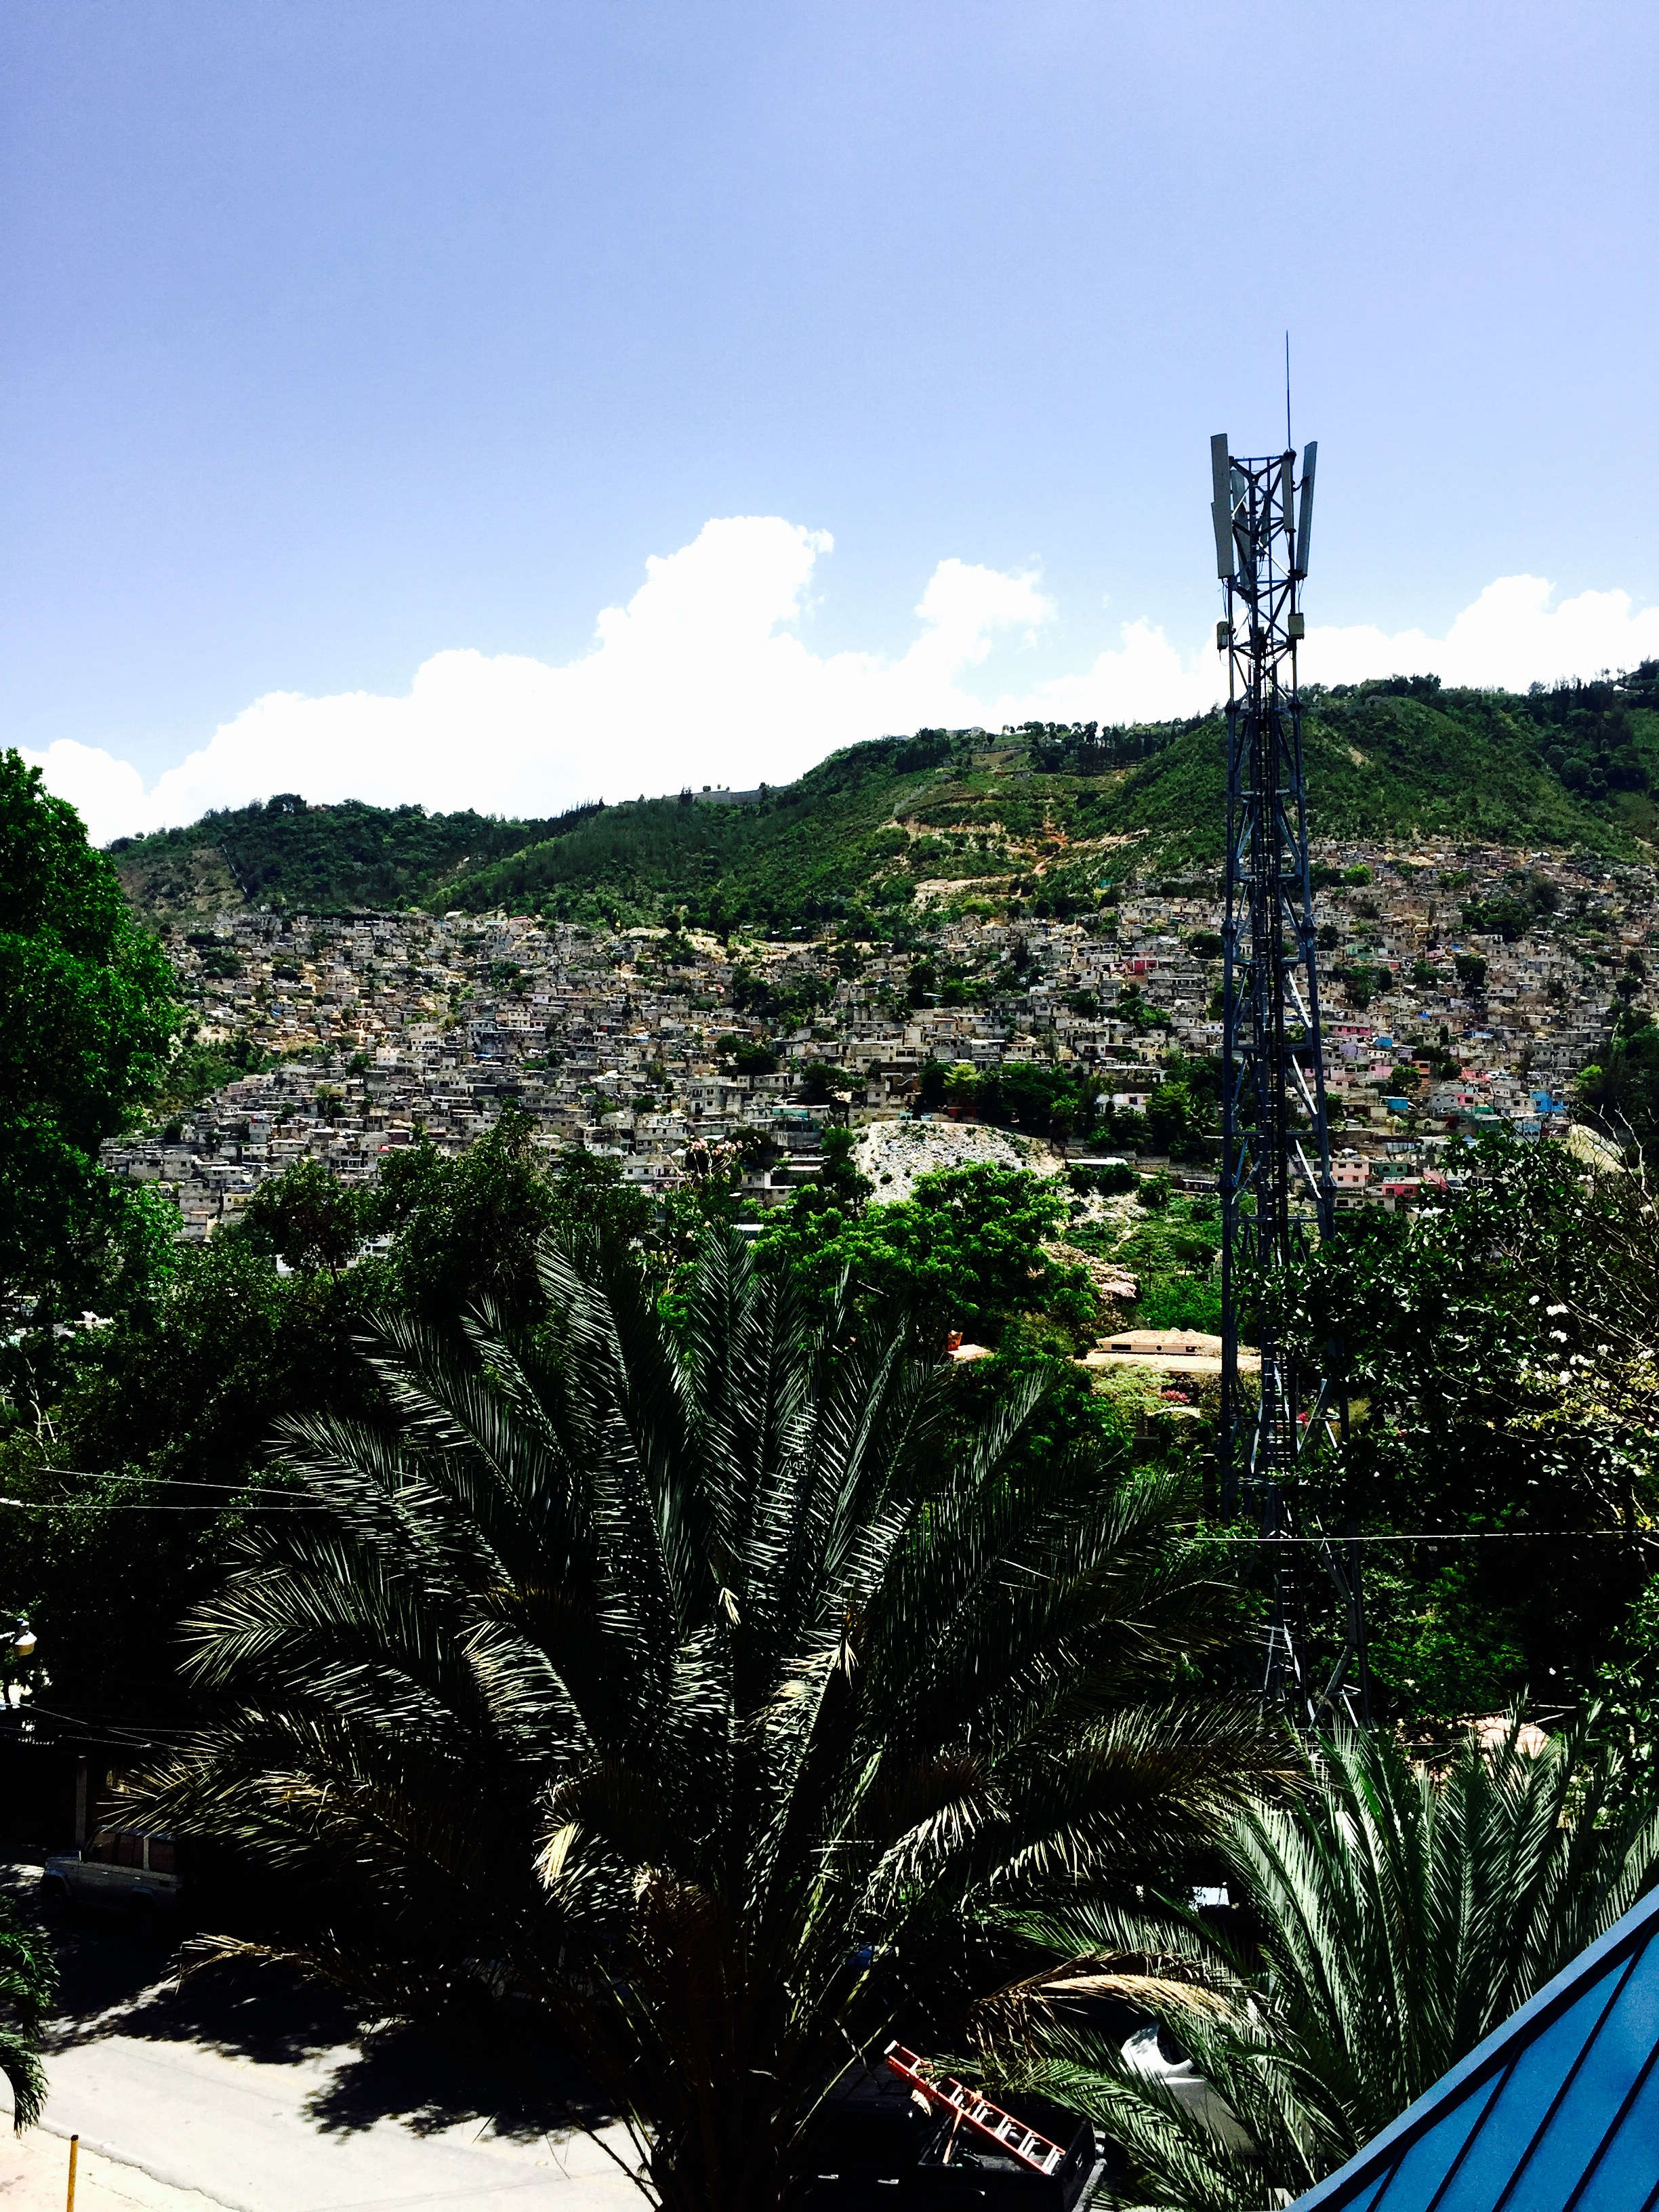 The Hills Have Eyes - A shot of the Haitian slums that lit up at night and forced me to sleep with the lights on.